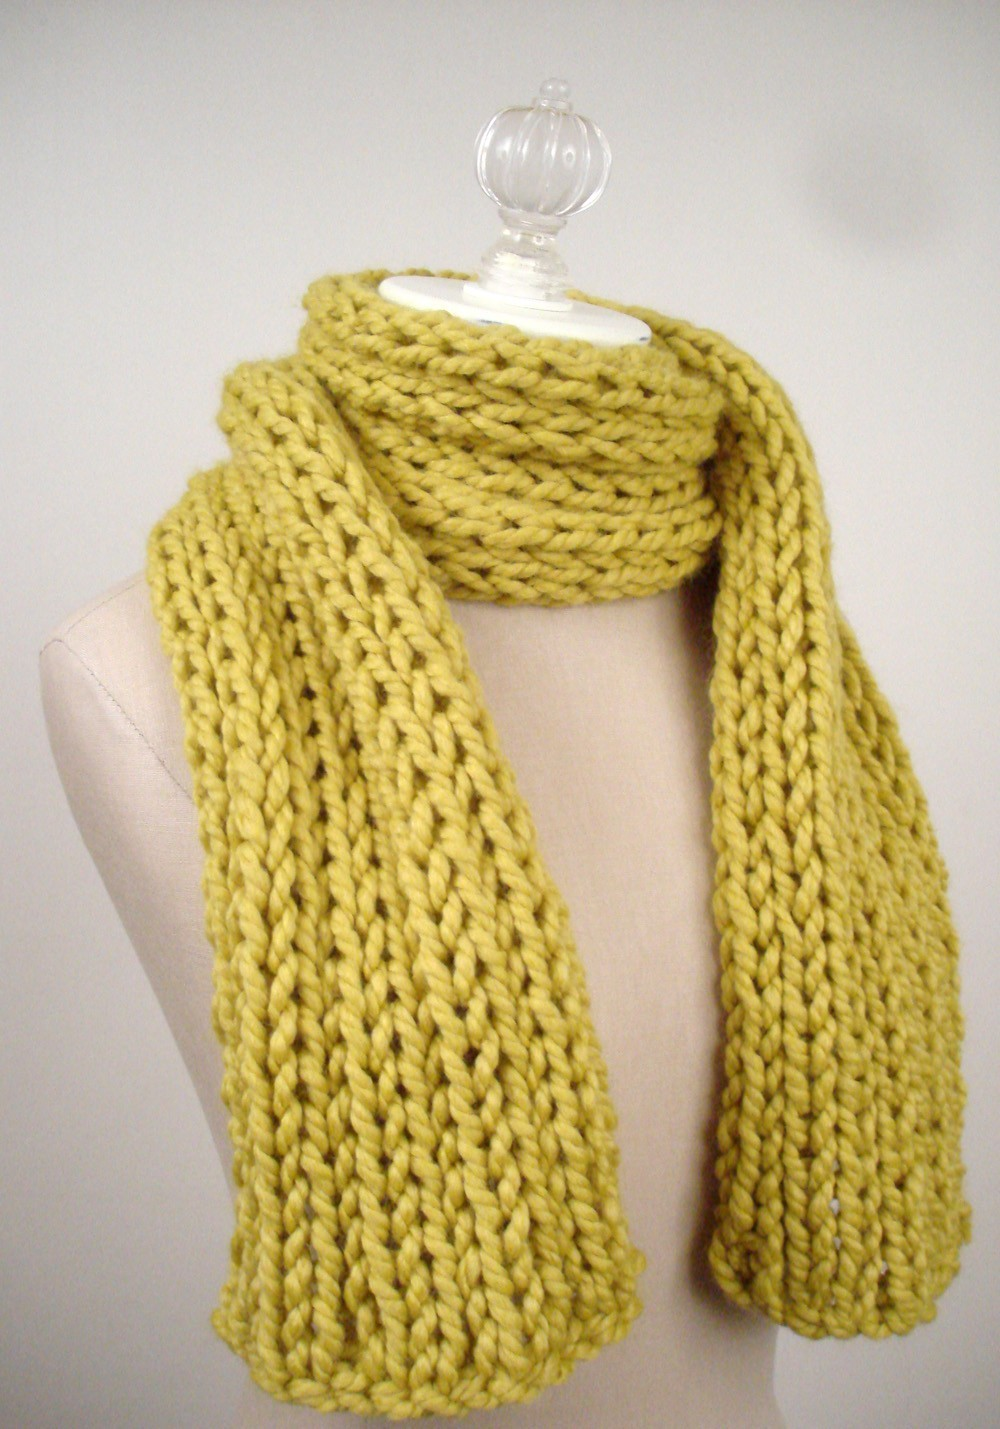 Knitting Scarves Free Patterns : Scarf Knitting Patterns A Knitting Blog